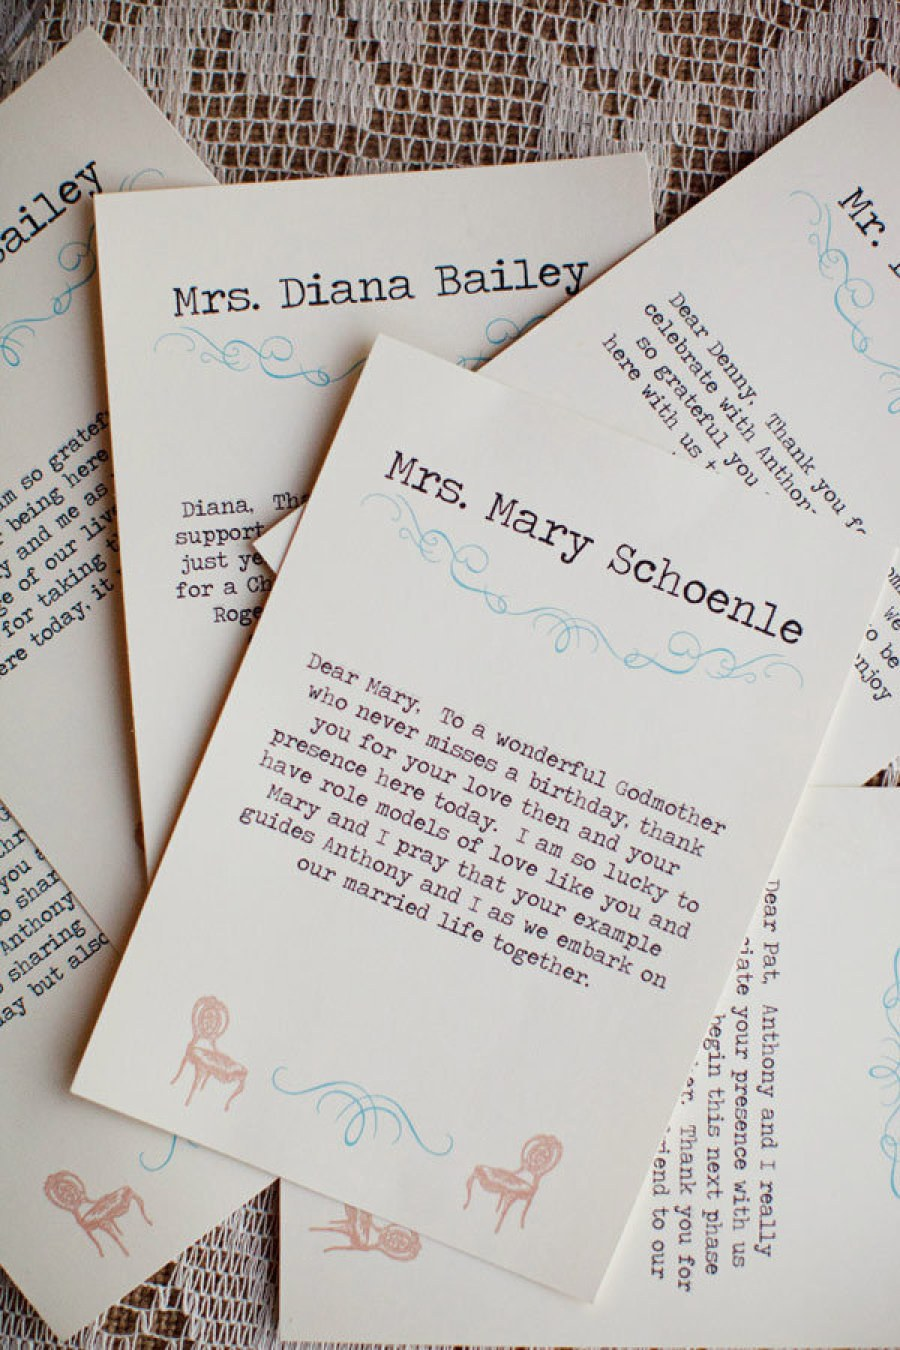 Bobbi Photo    Typed Notes for Every Guest  Once guests arrived at the reception, they located their dinner table and were greeted with place cards at each seat that also included a personal note from the couple, typed out on a vintage typewriter.